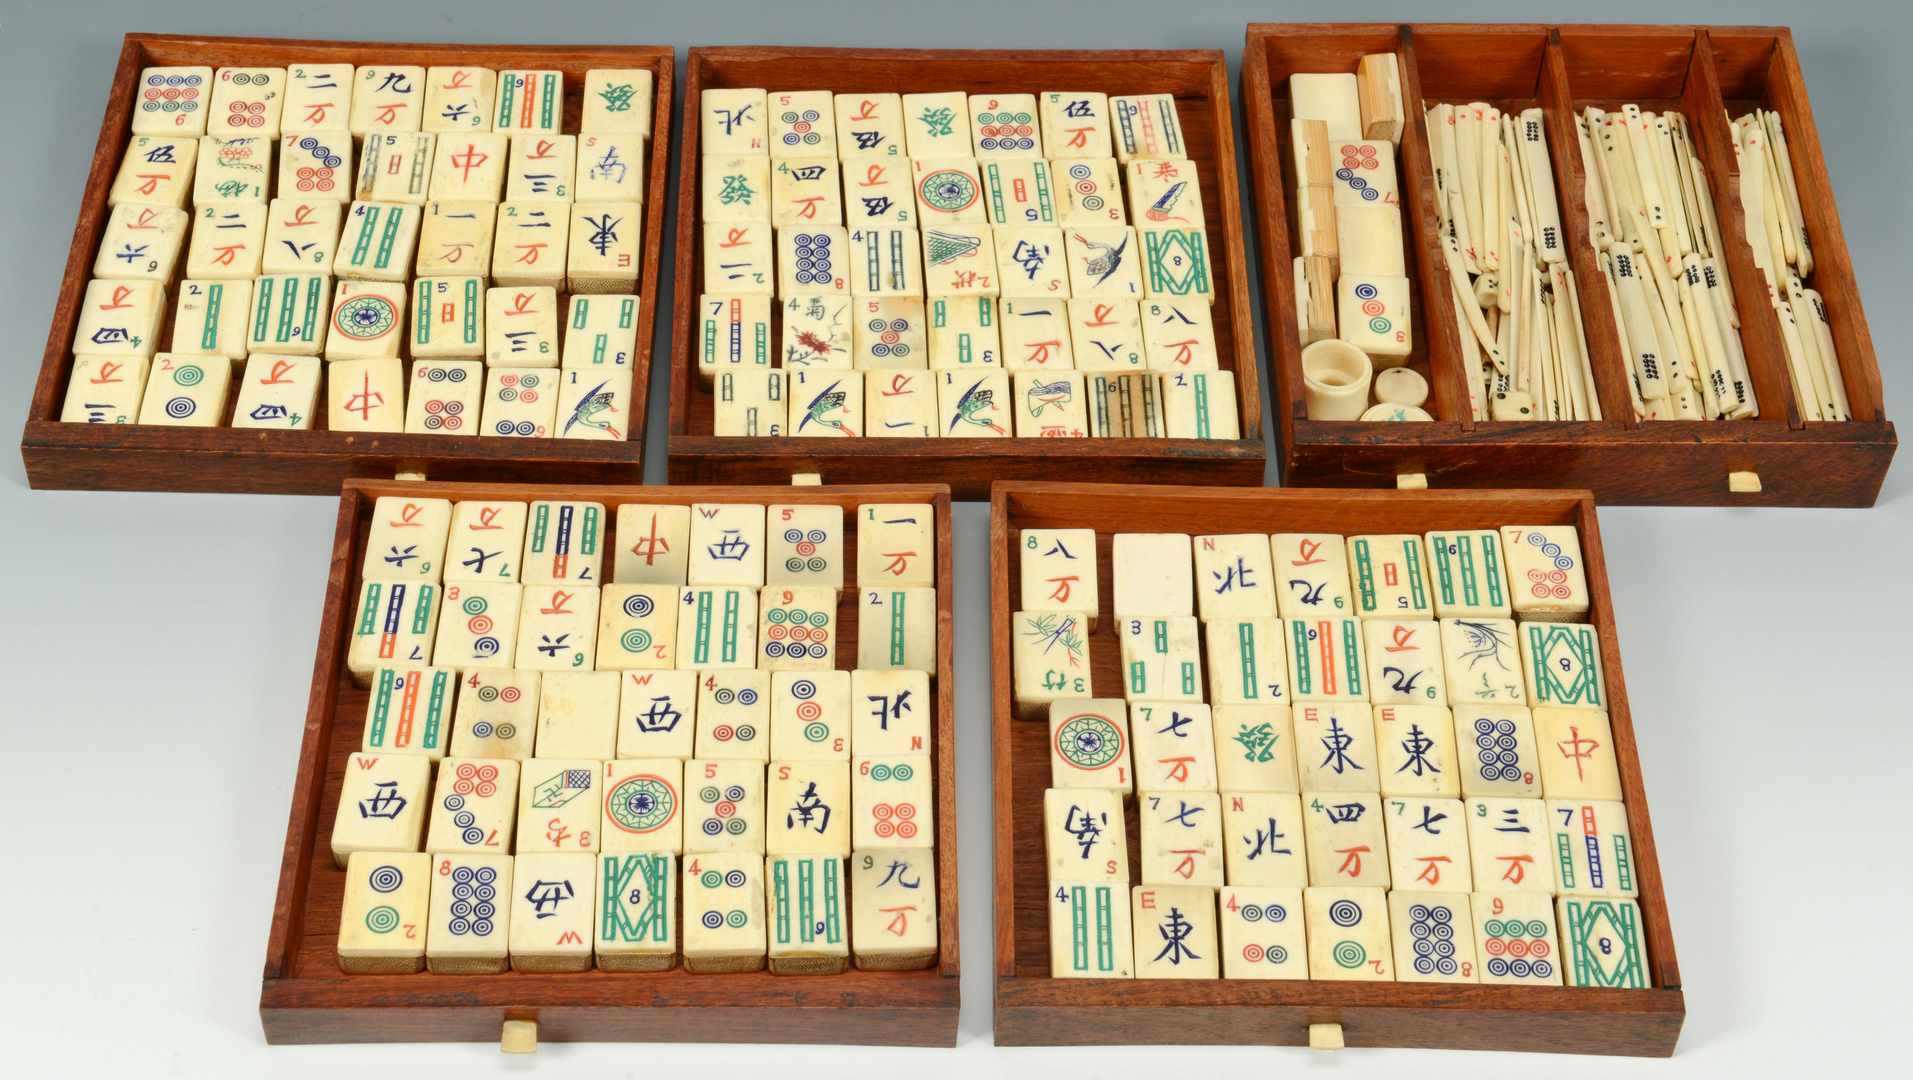 Lot 3088136: Ivory Mah Jongg Set, c. 1925